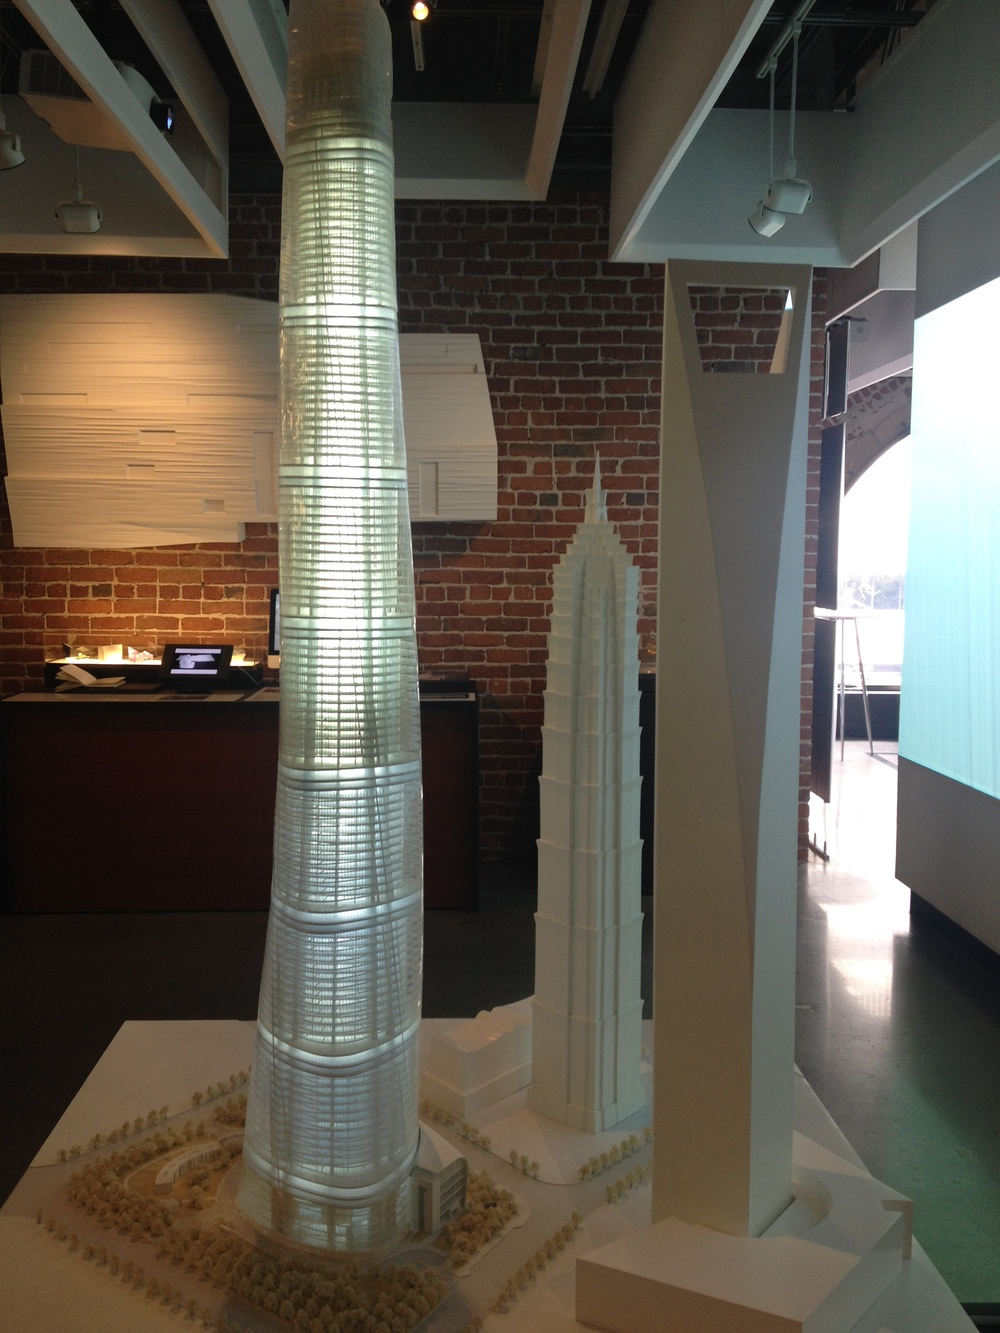 Autodesk Gallery | One Embarcadero